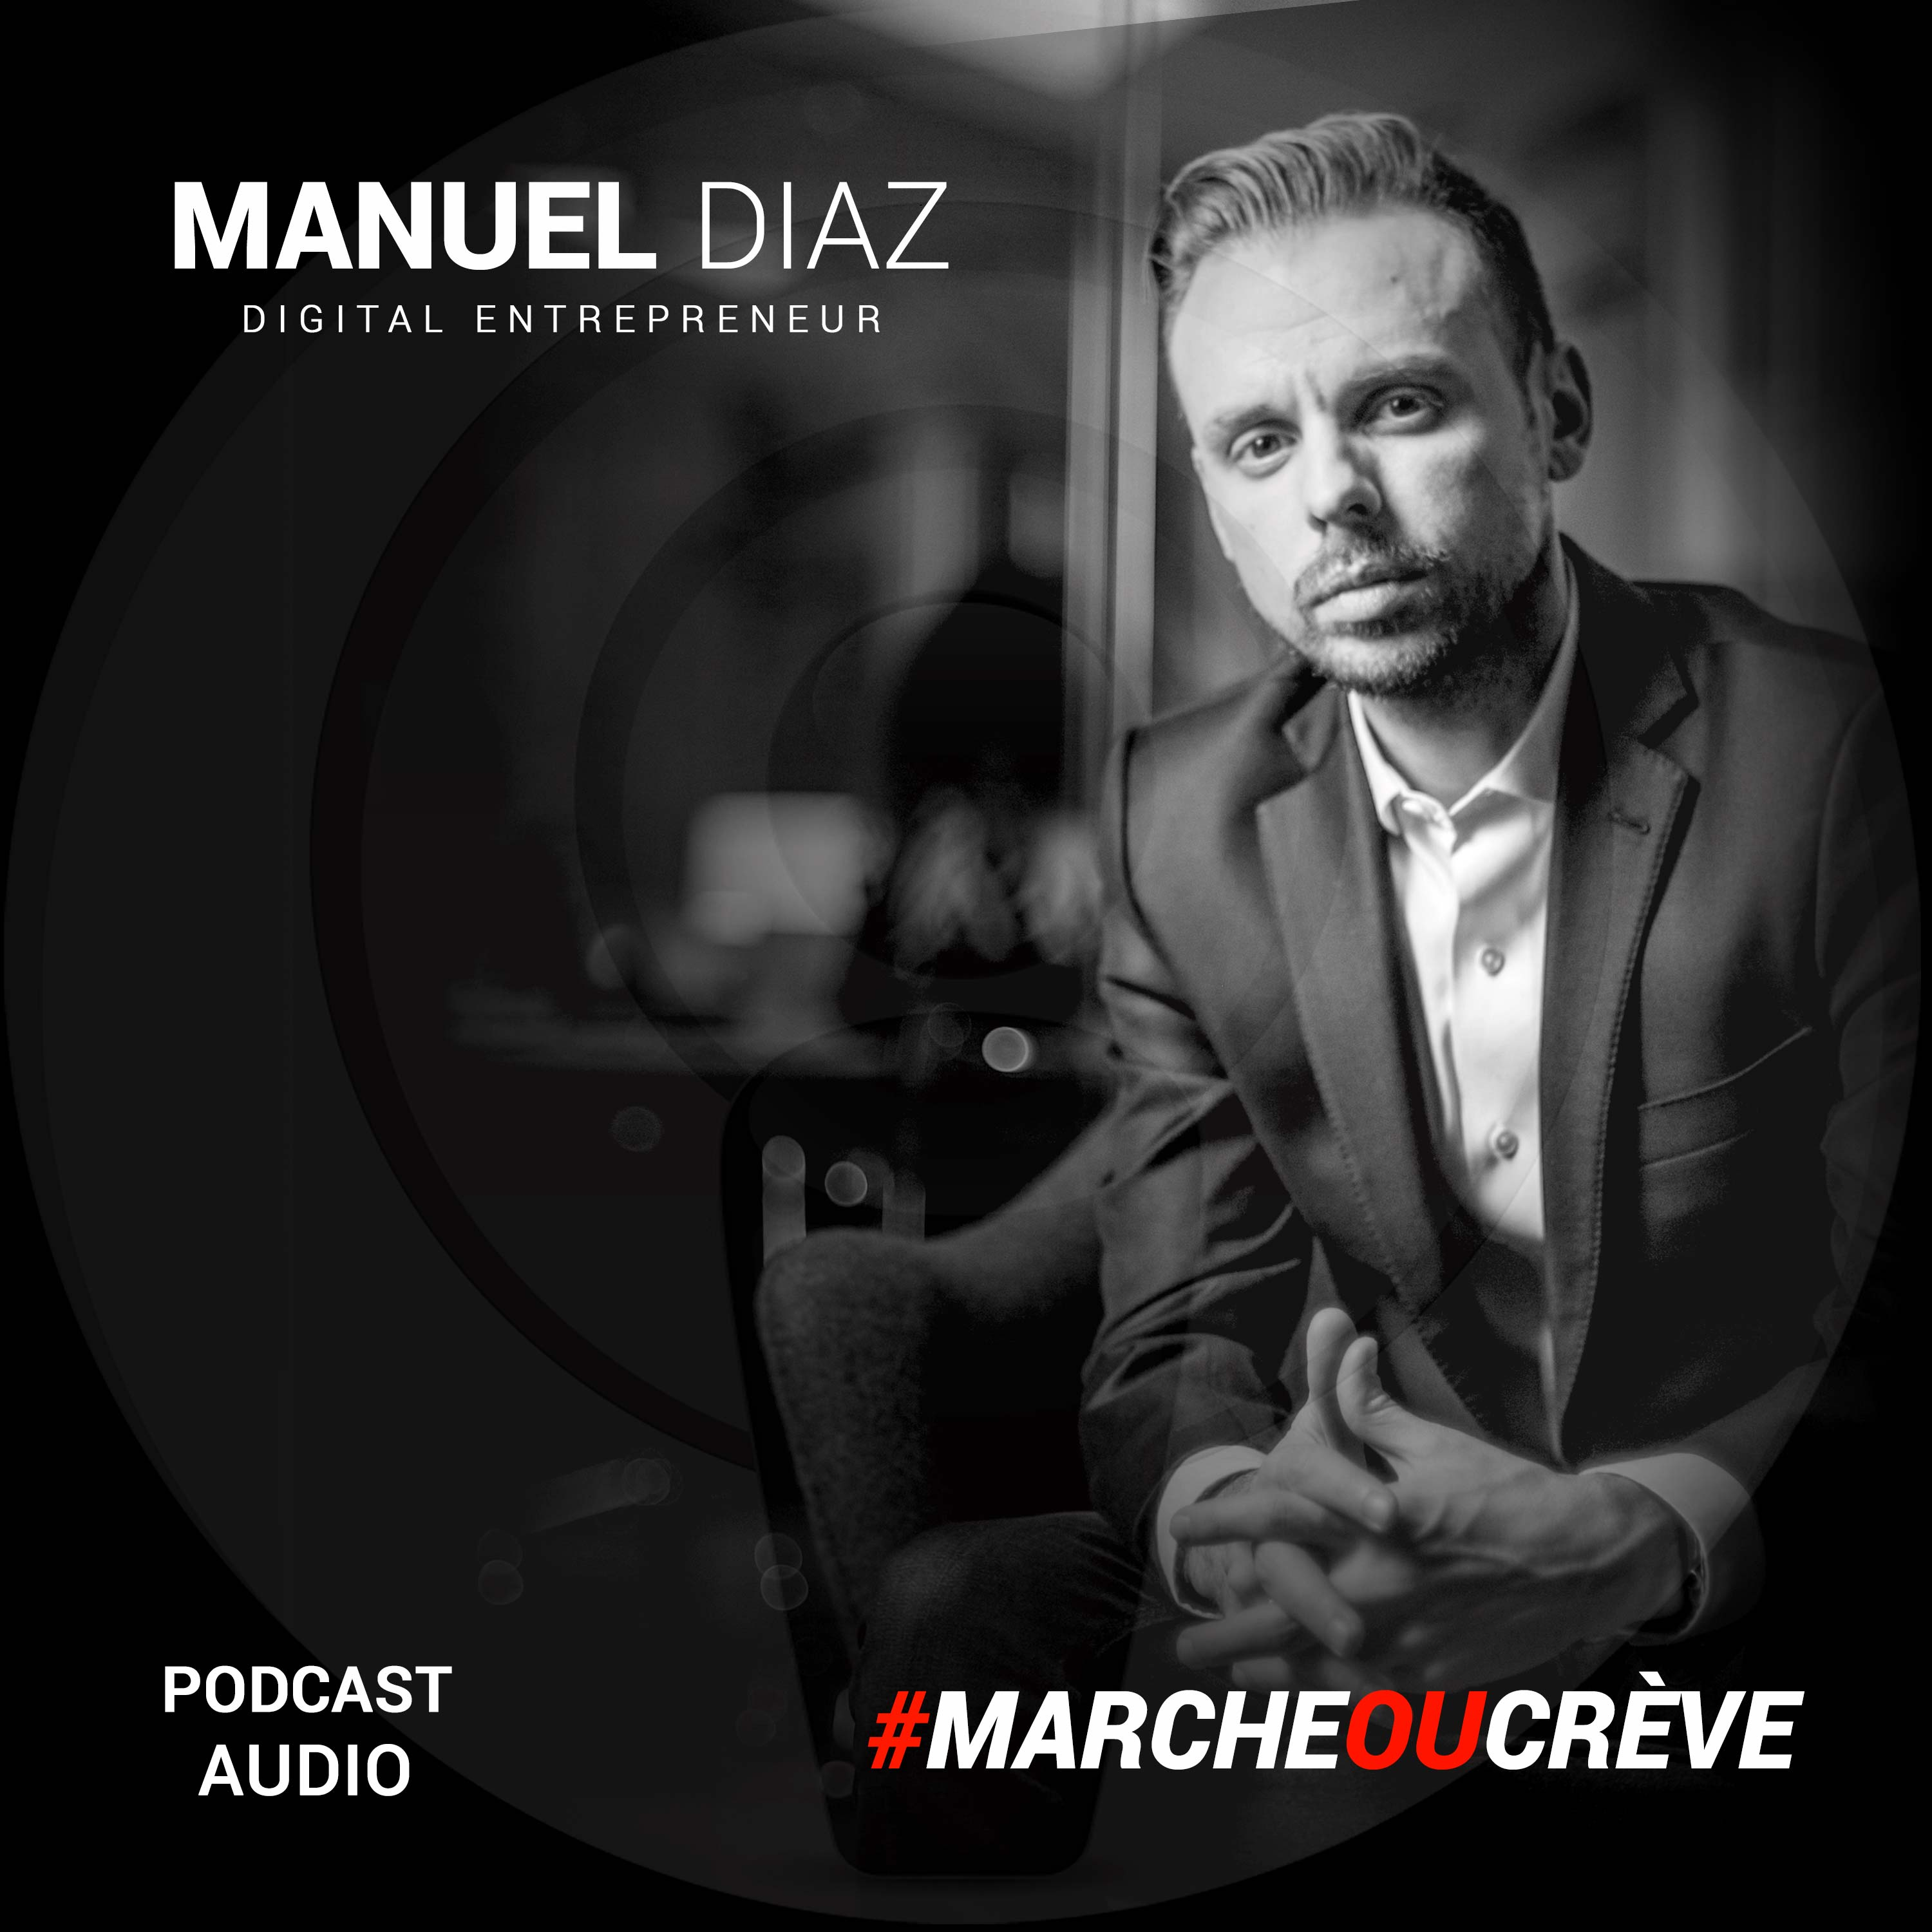 Manuel Diaz Podcast show art